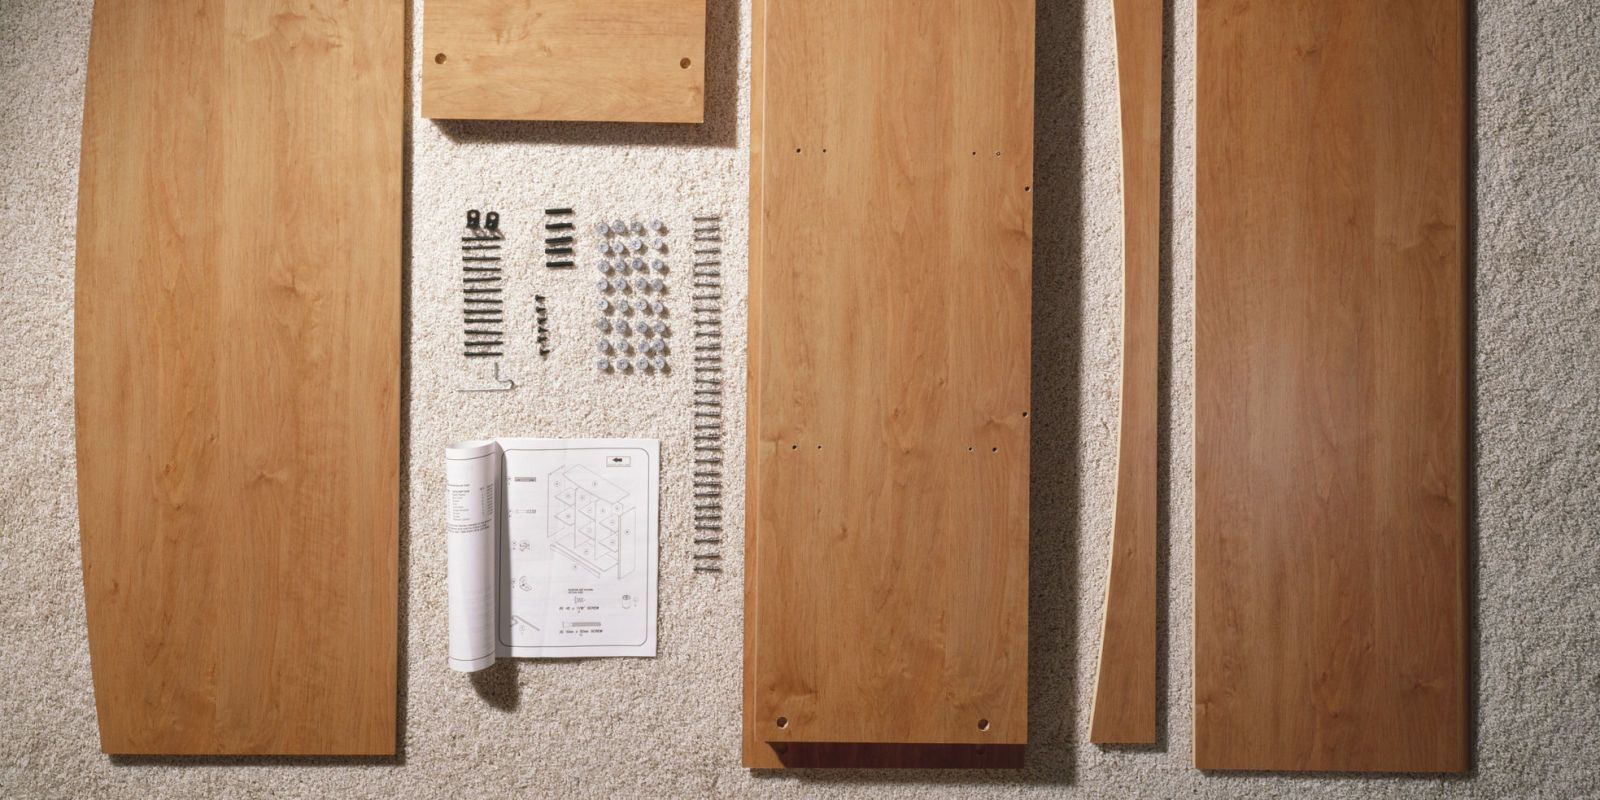 Do You Find Flat Pack Instructions Confusing? Hereu0027s How To Make It Easier